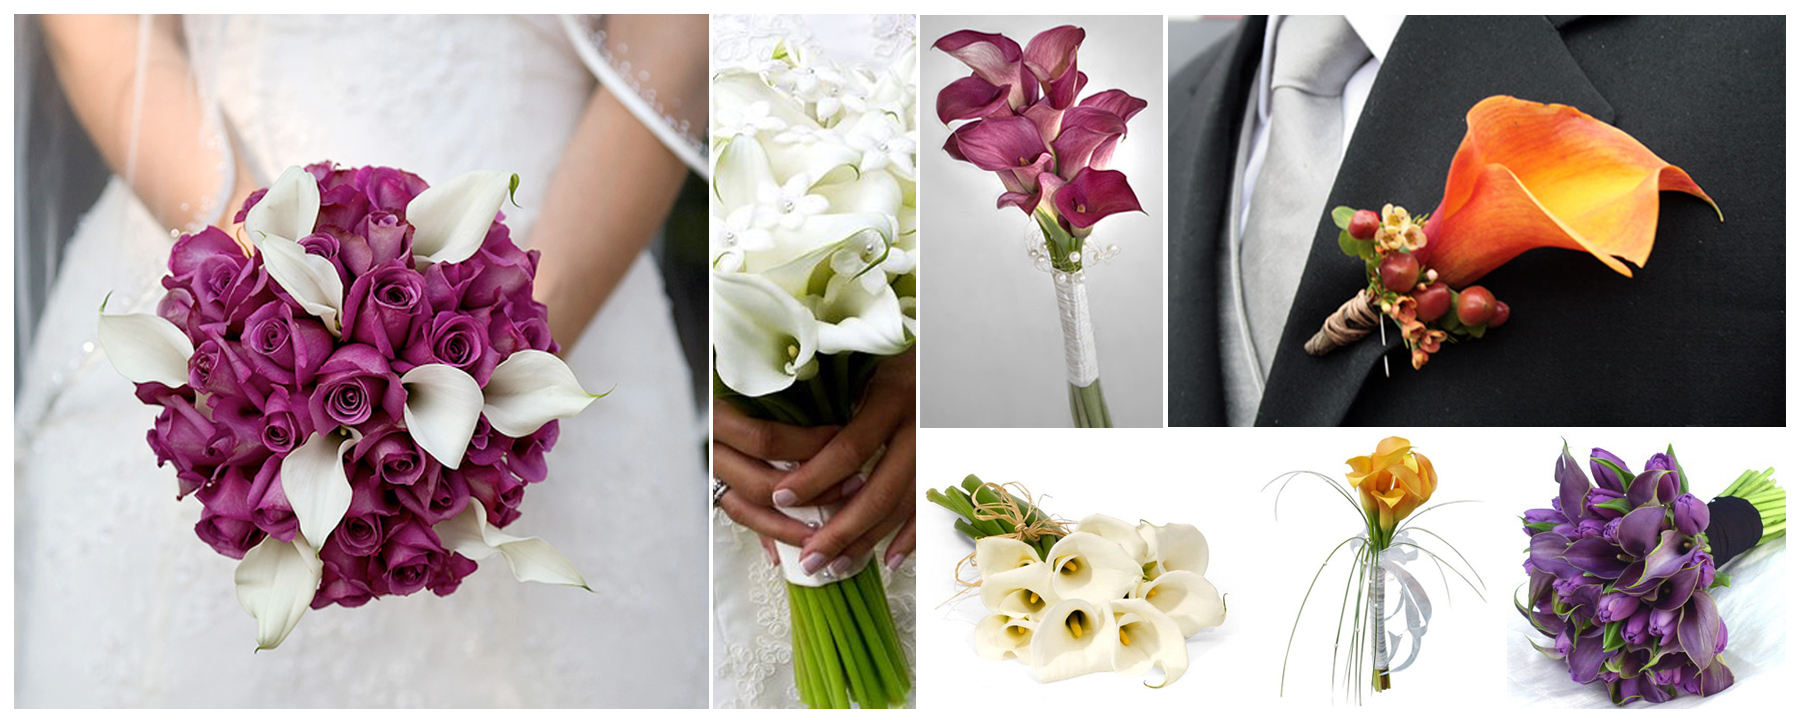 Wedding flowers and their meanings calla lily maybrides wedding click izmirmasajfo